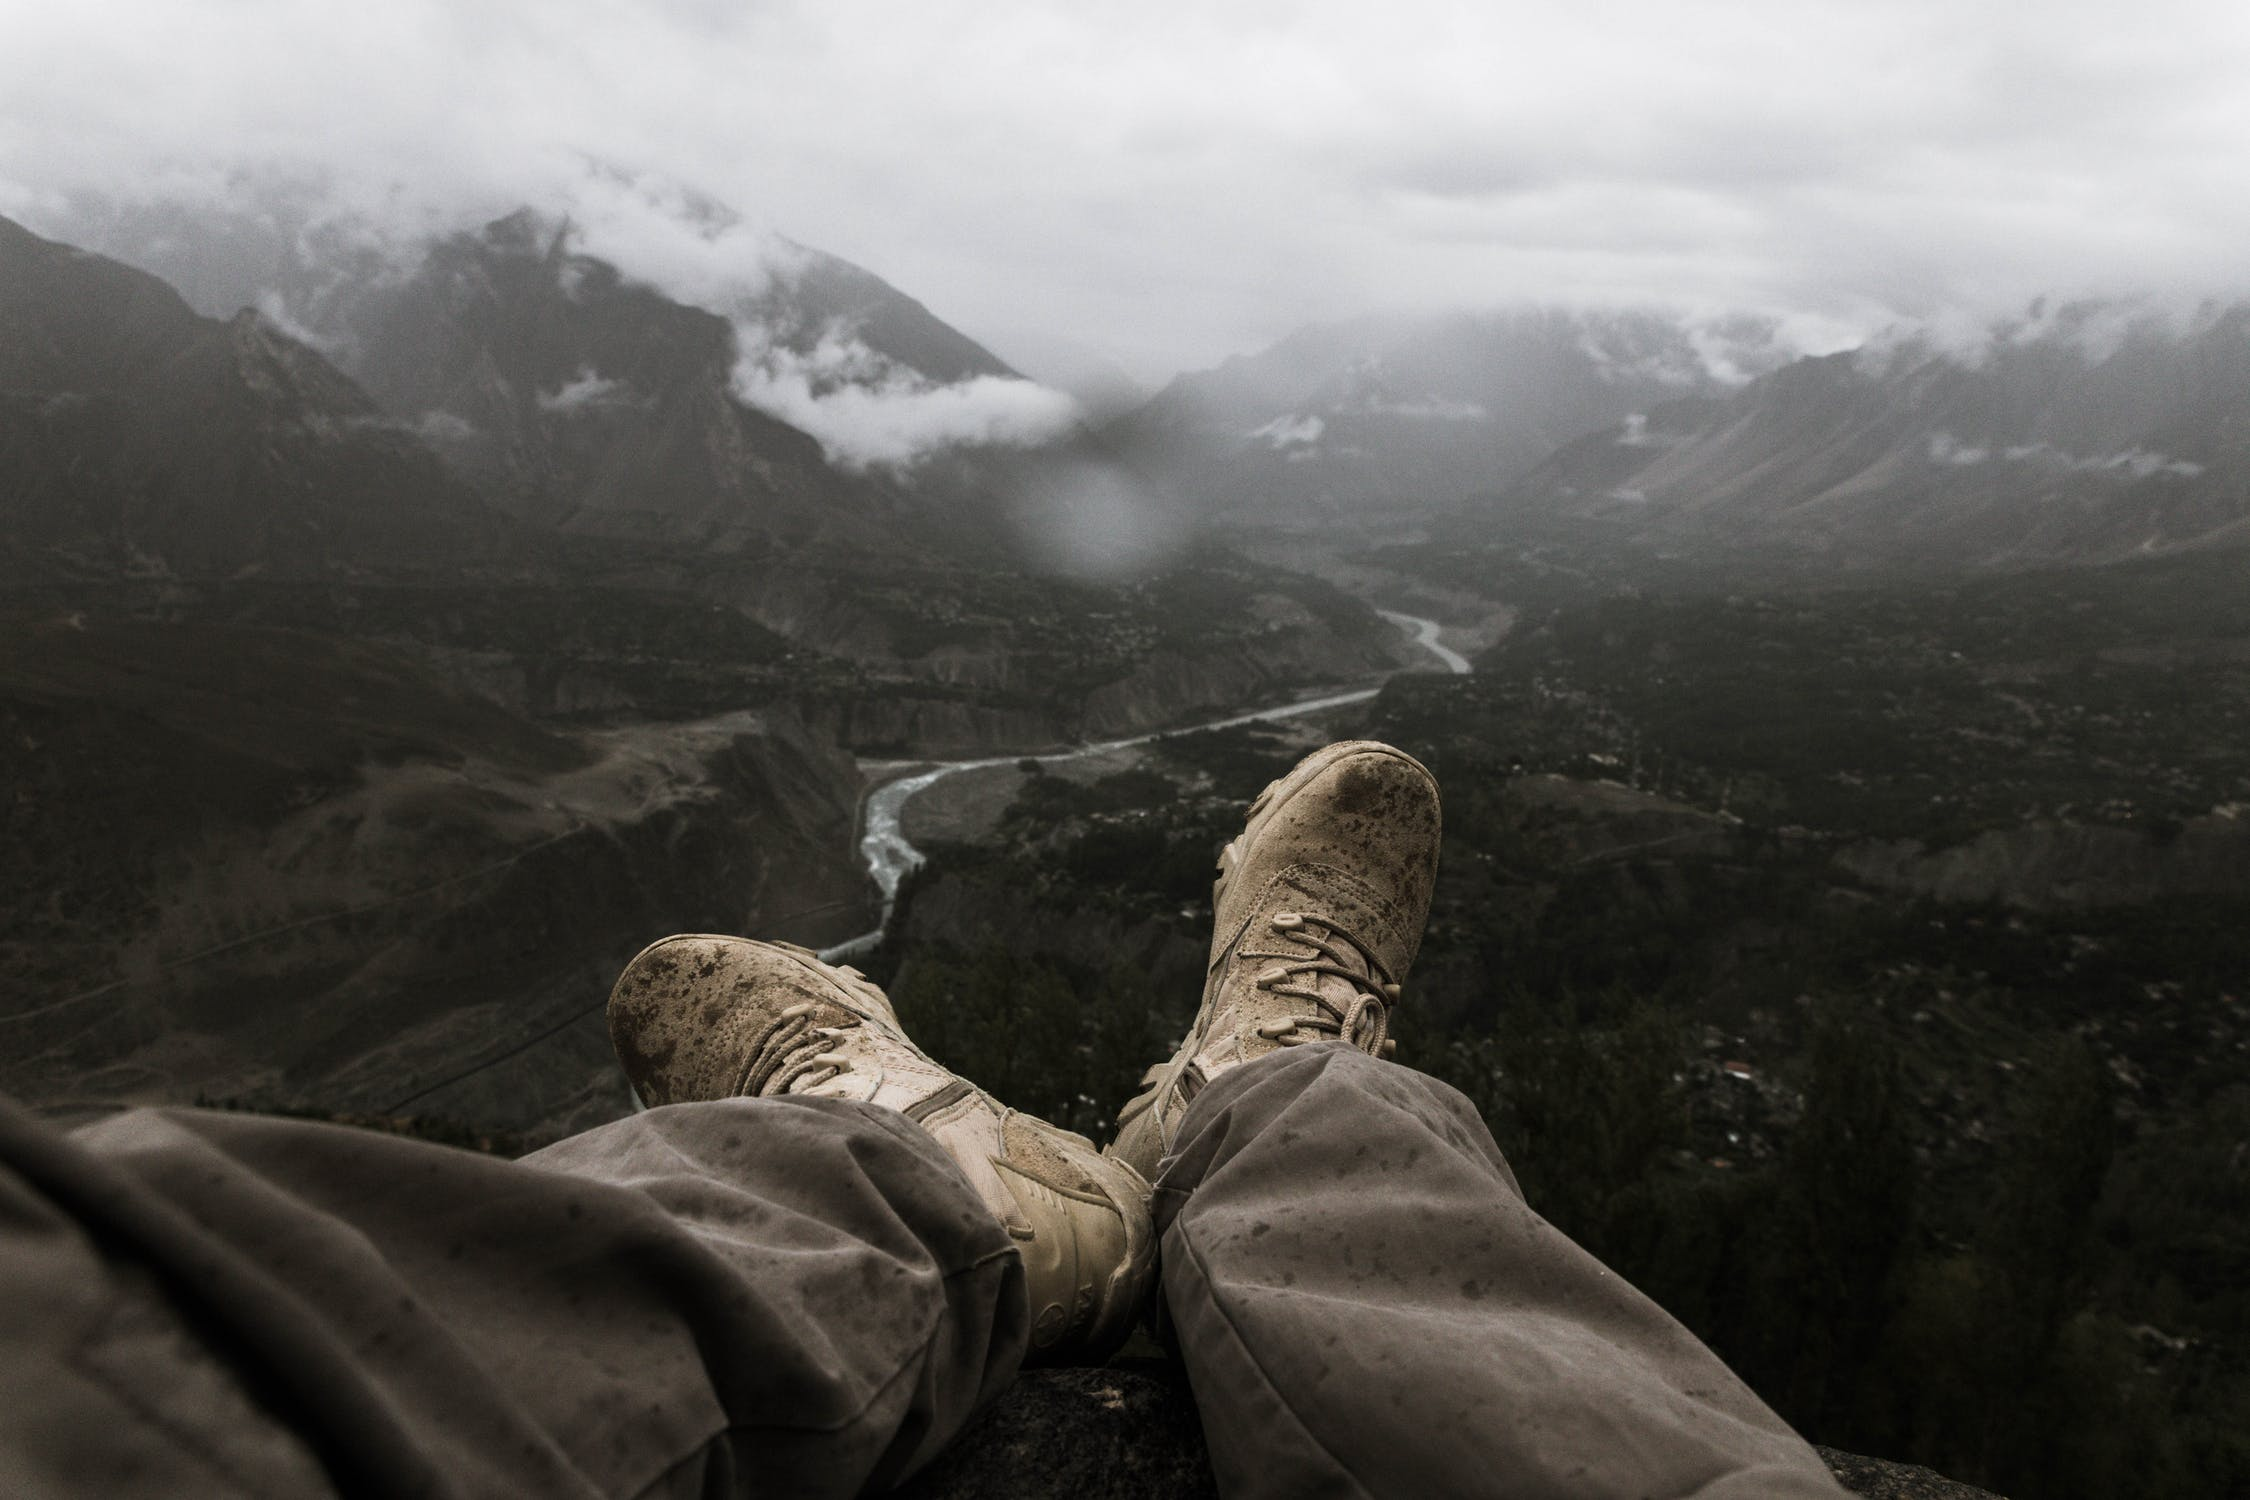 Are cargo pants good for hiking?